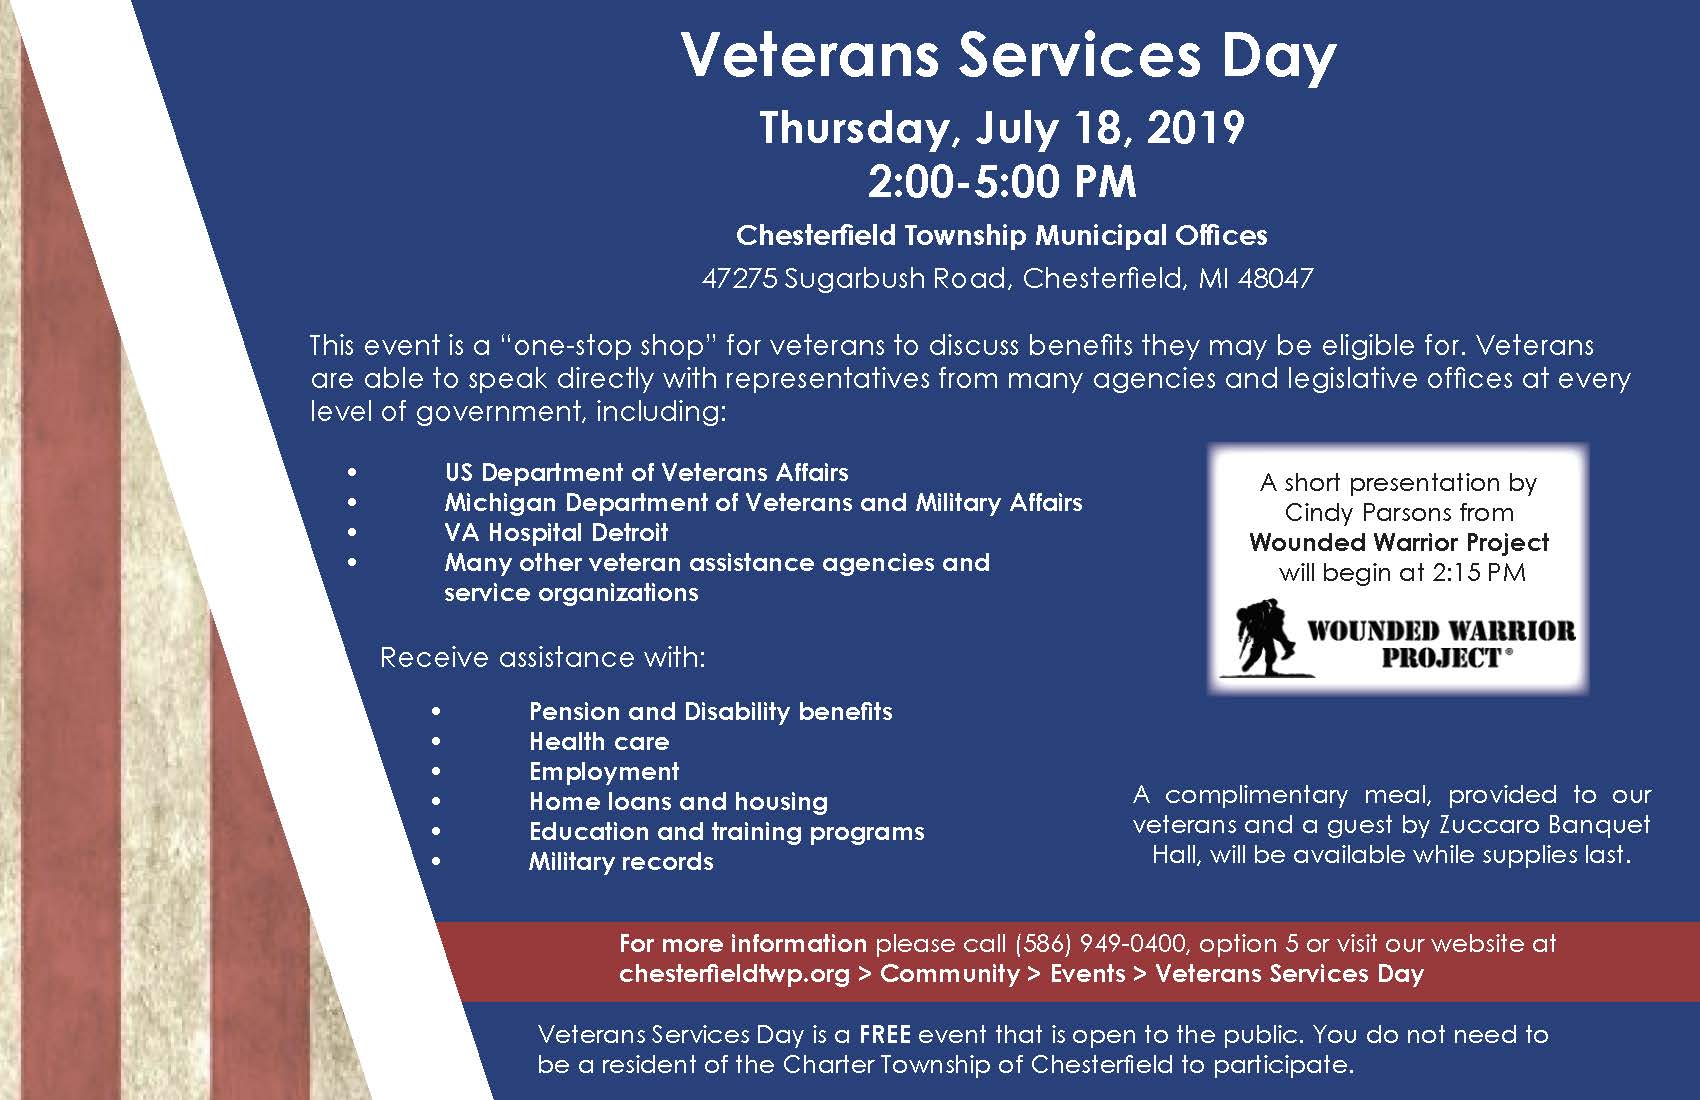 Veterans Service Day